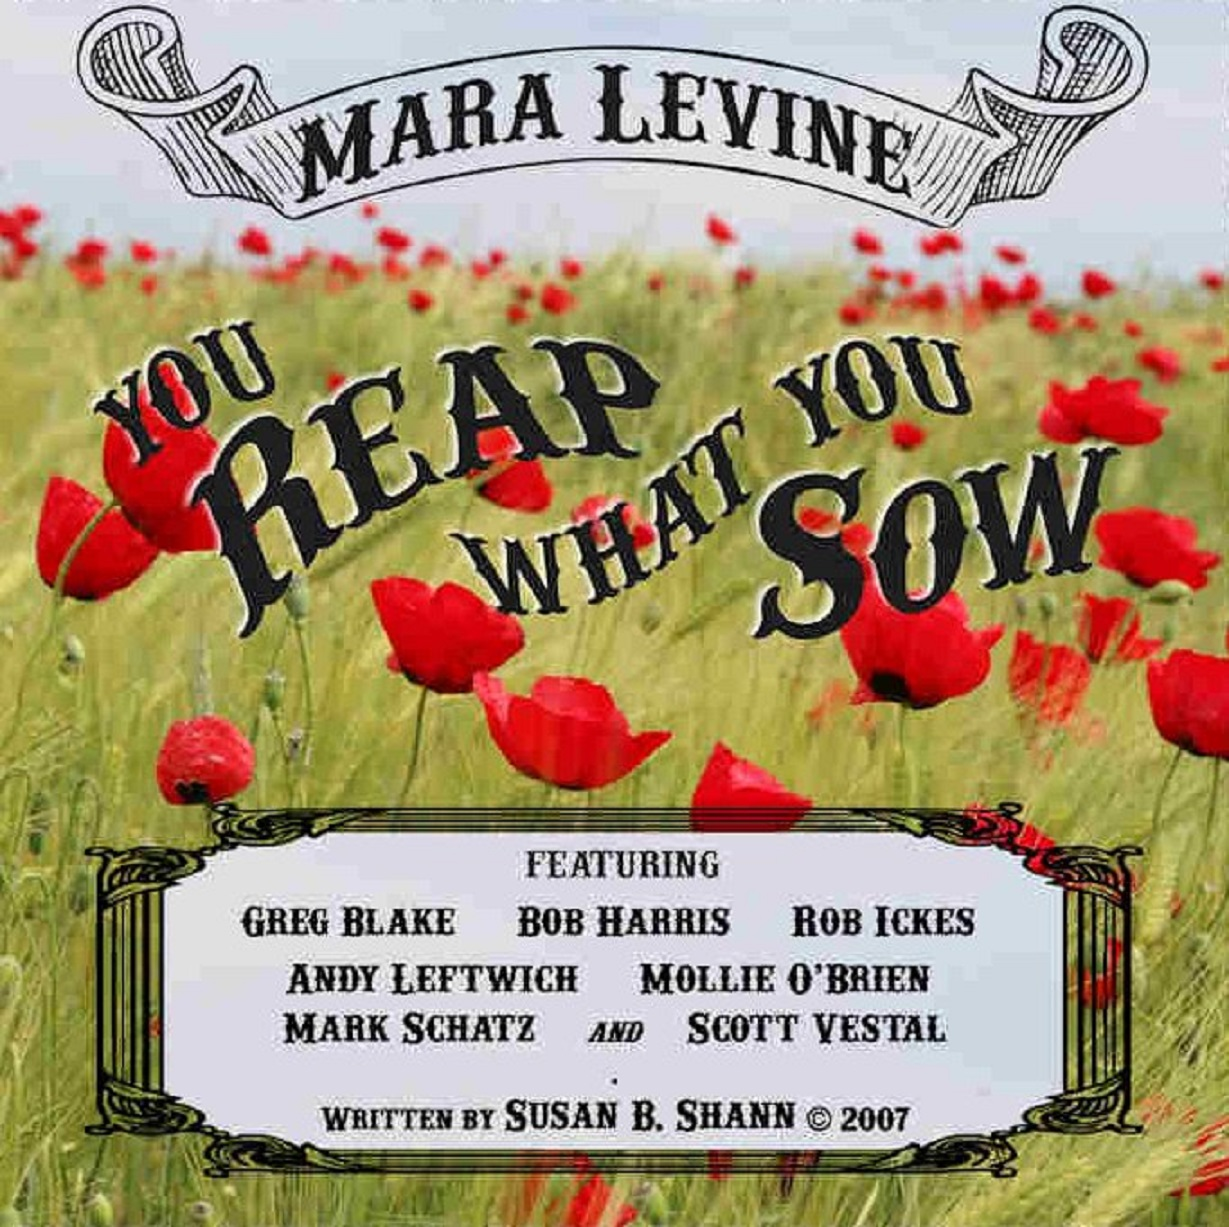 Mara Levine Announces European Tour Dates